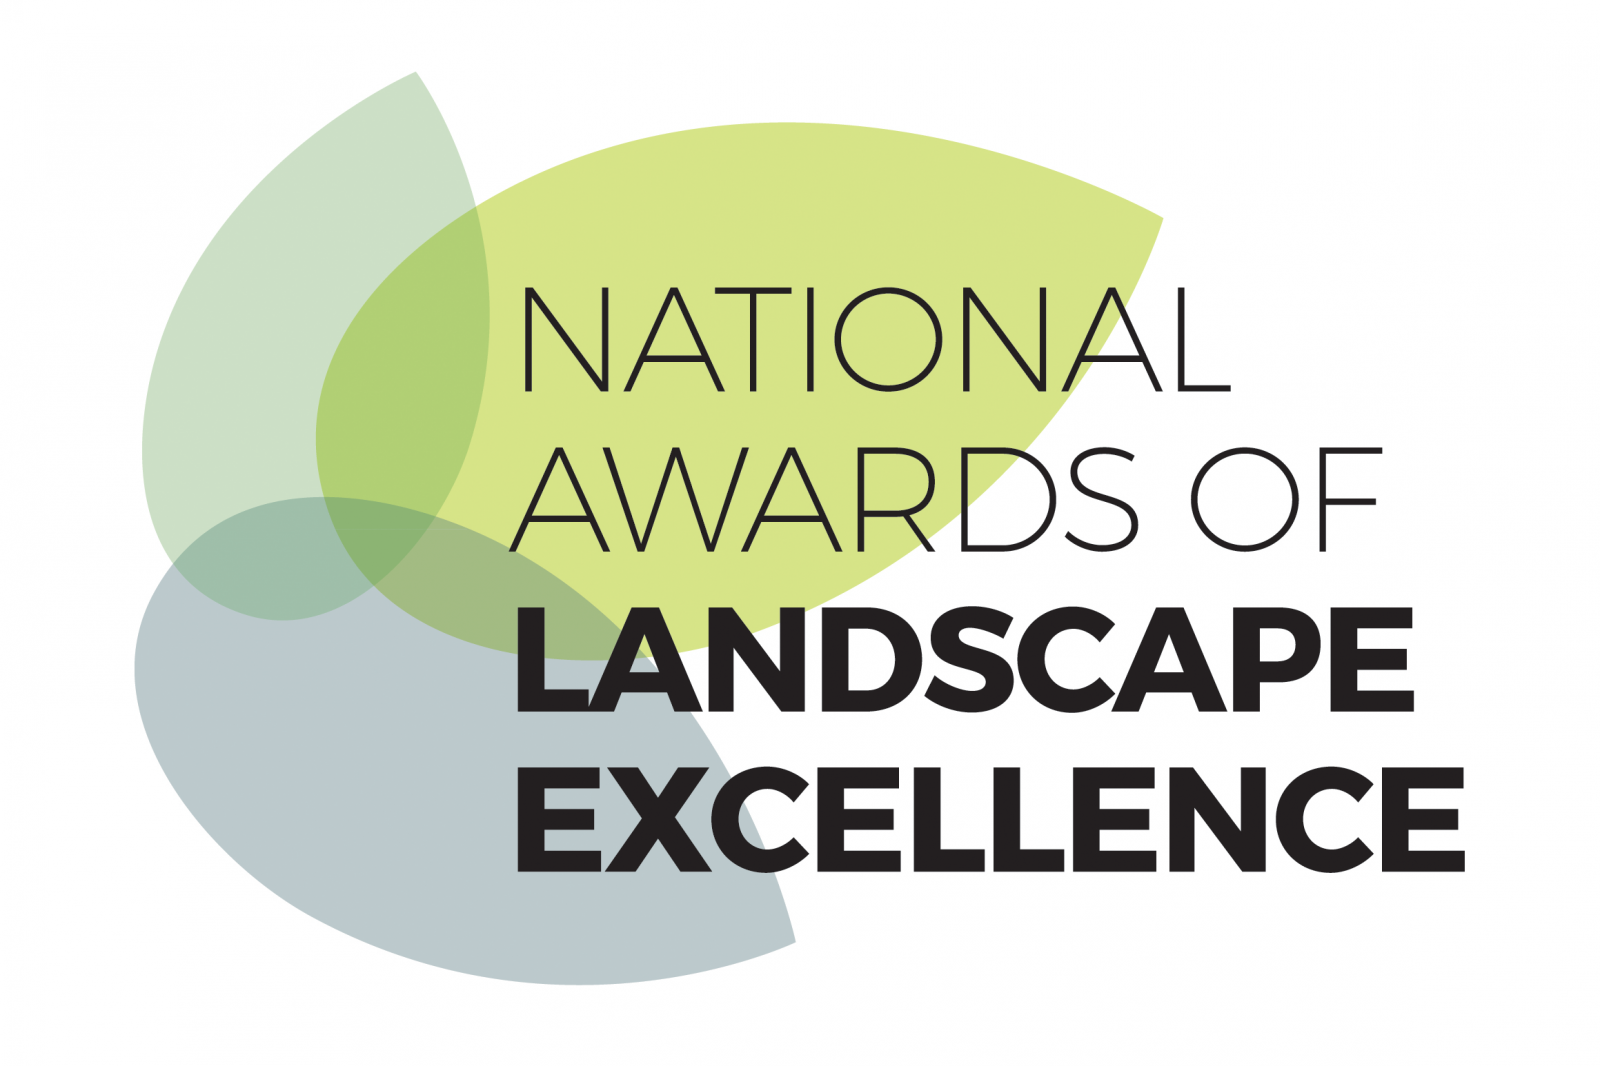 Top national landscape and horticulture awards announced for 2021